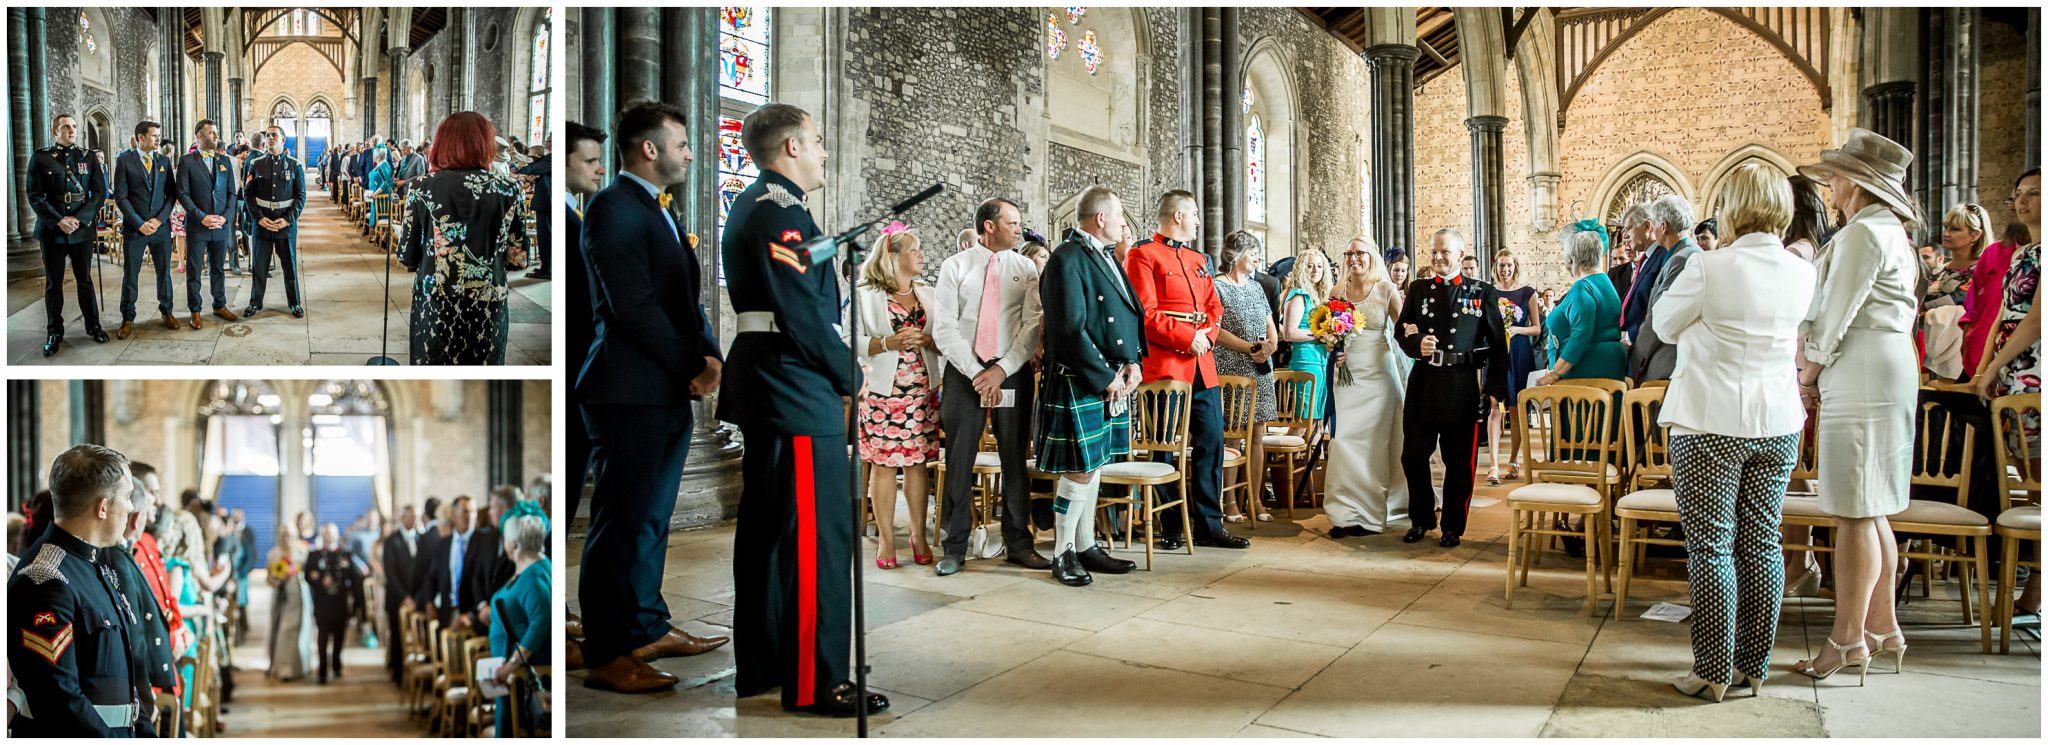 Winchester Great Hall wedding photography bride walks down the aisle on father's arm